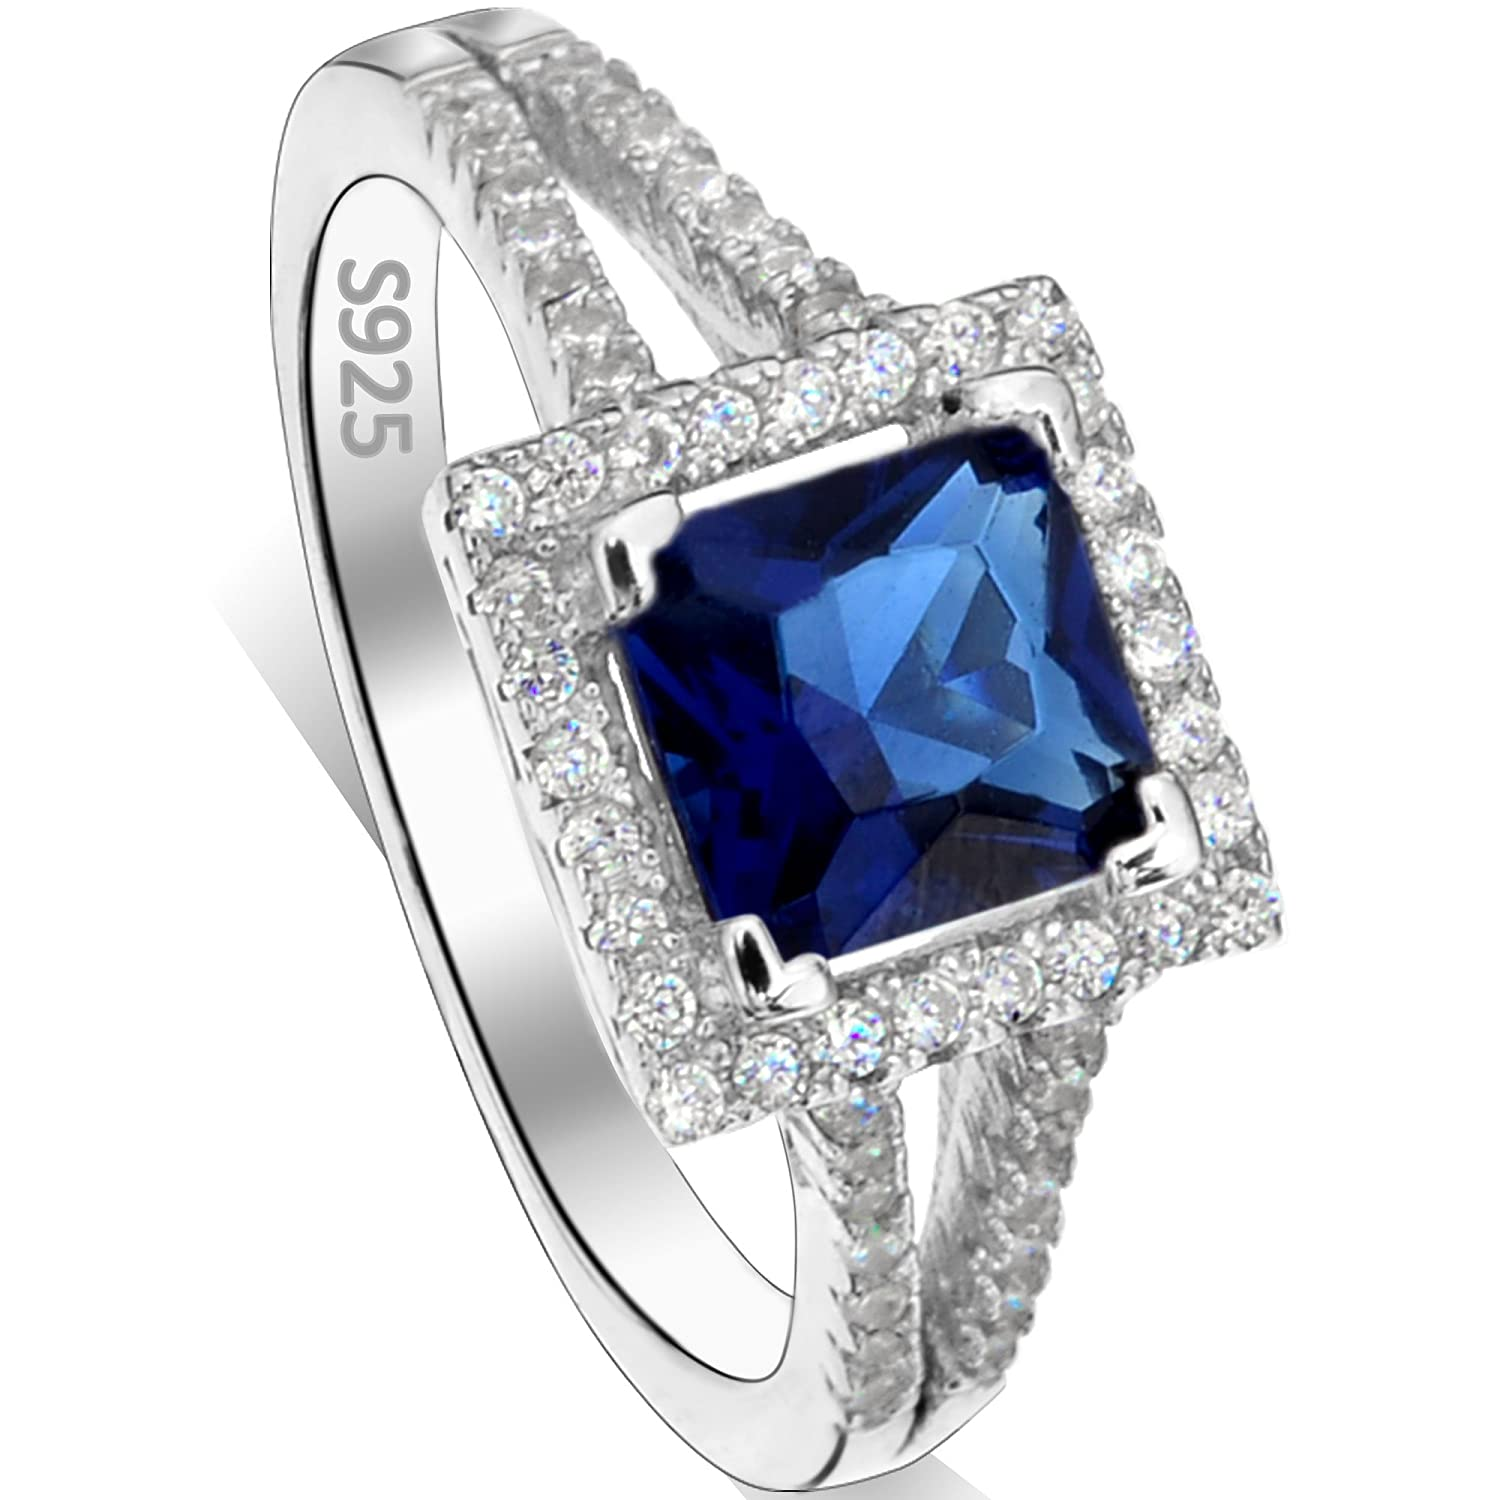 EVER FAITH 925 Sterling Silver Princess Cut Sapphire Color .25ct CZ Daily Ring Blue